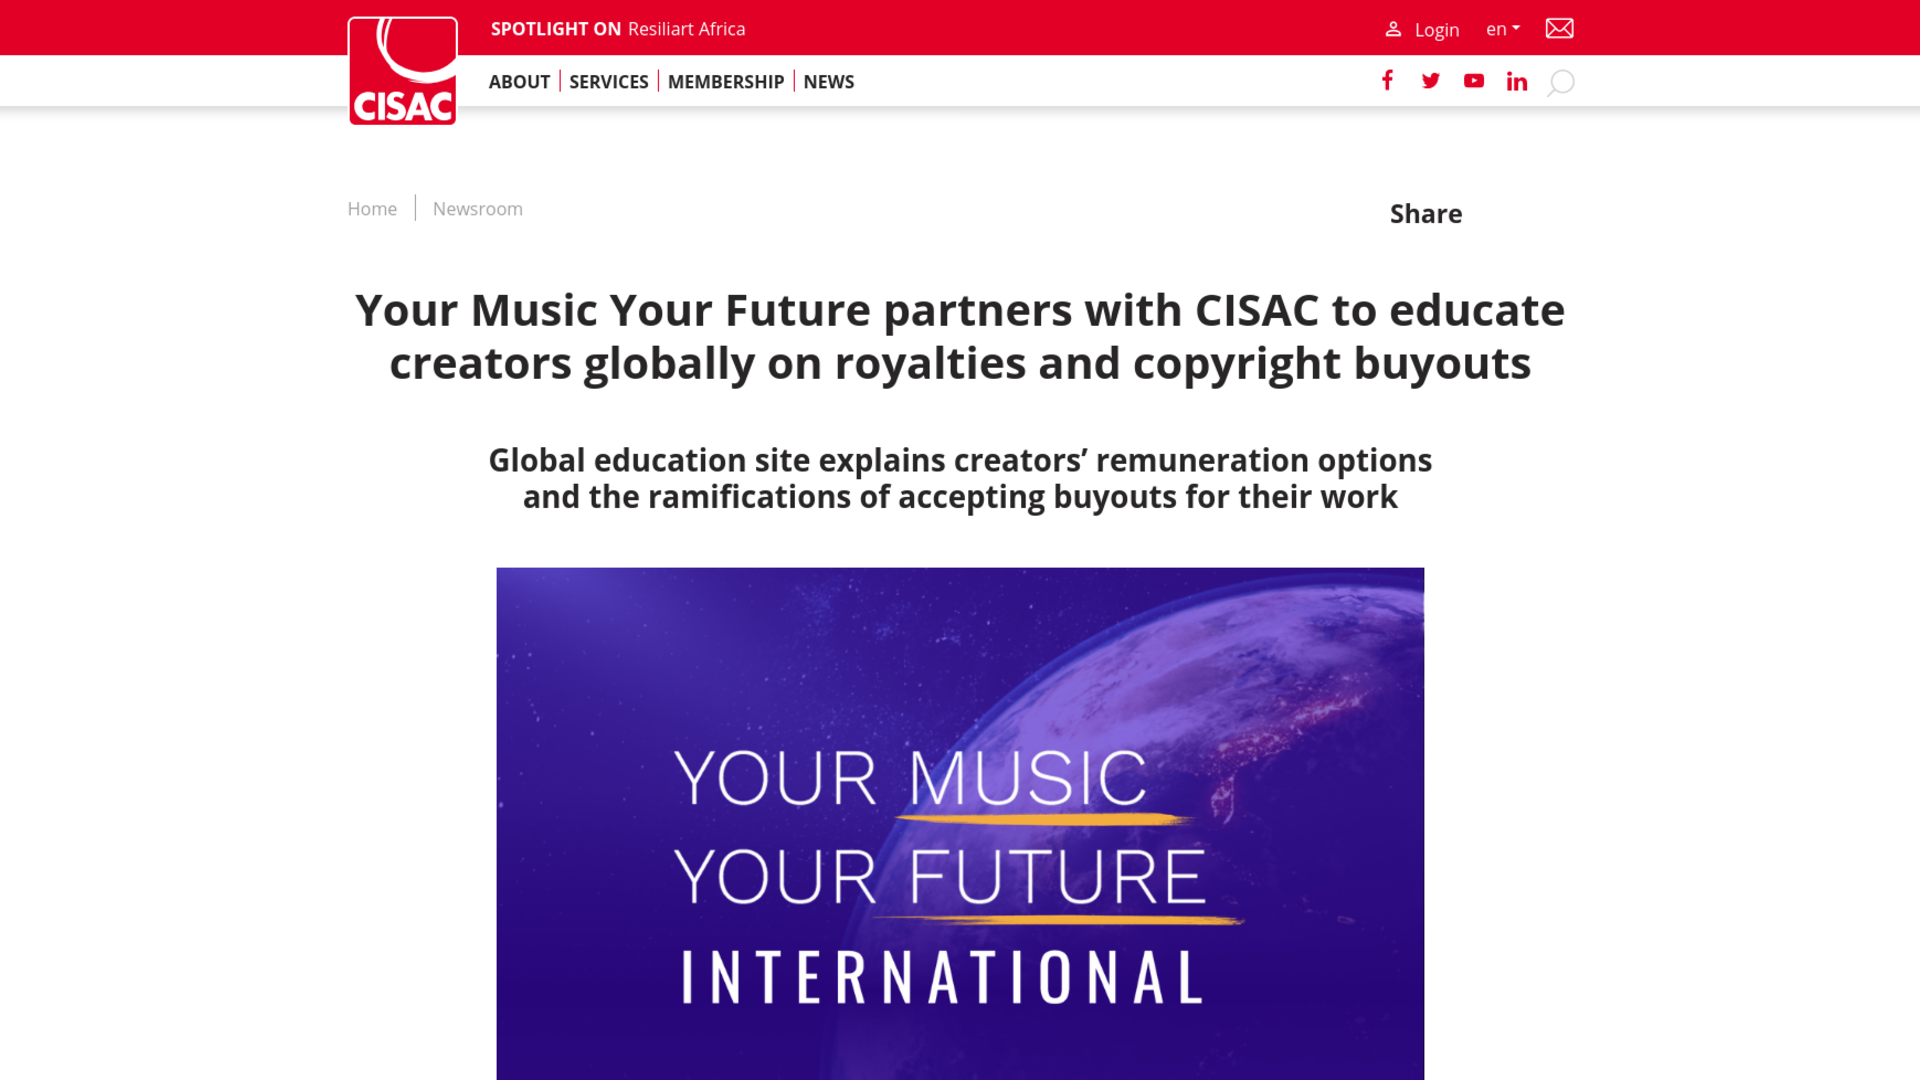 Fairness Rocks News Your Music Your Future partners with CISAC to educate creators globally on royalties and copyright buyouts